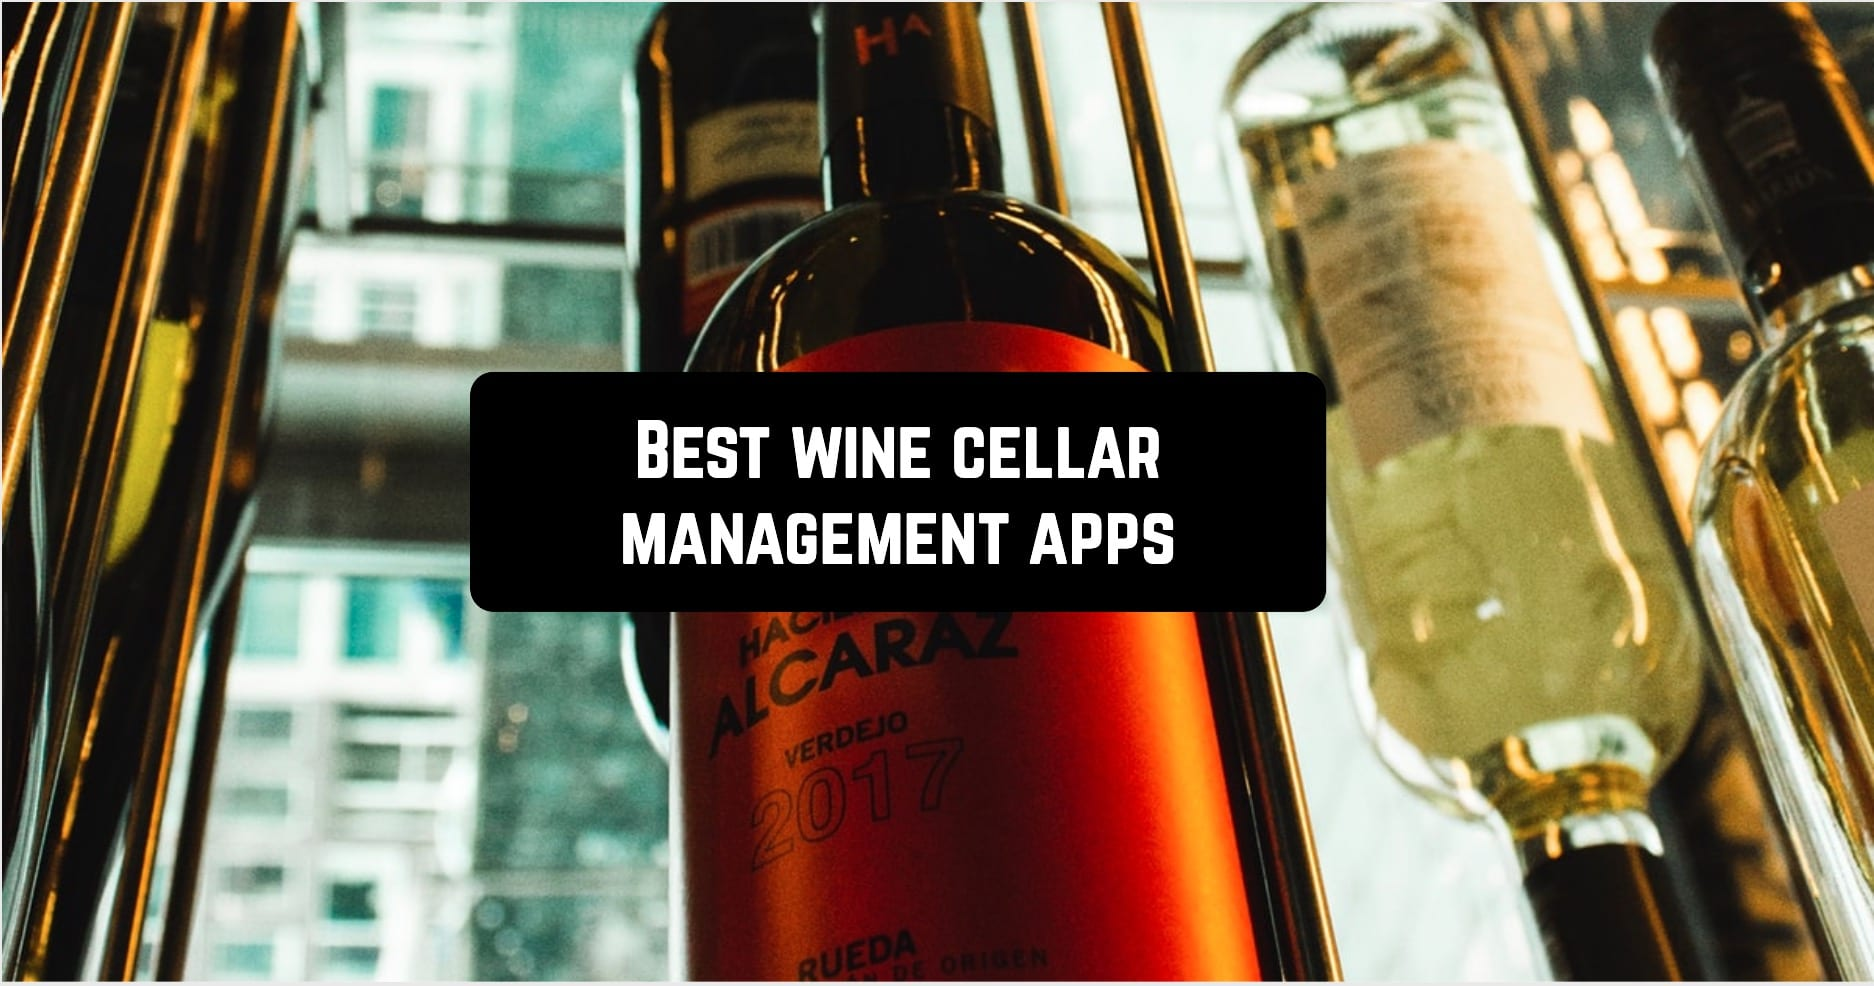 Best wine cellar management apps